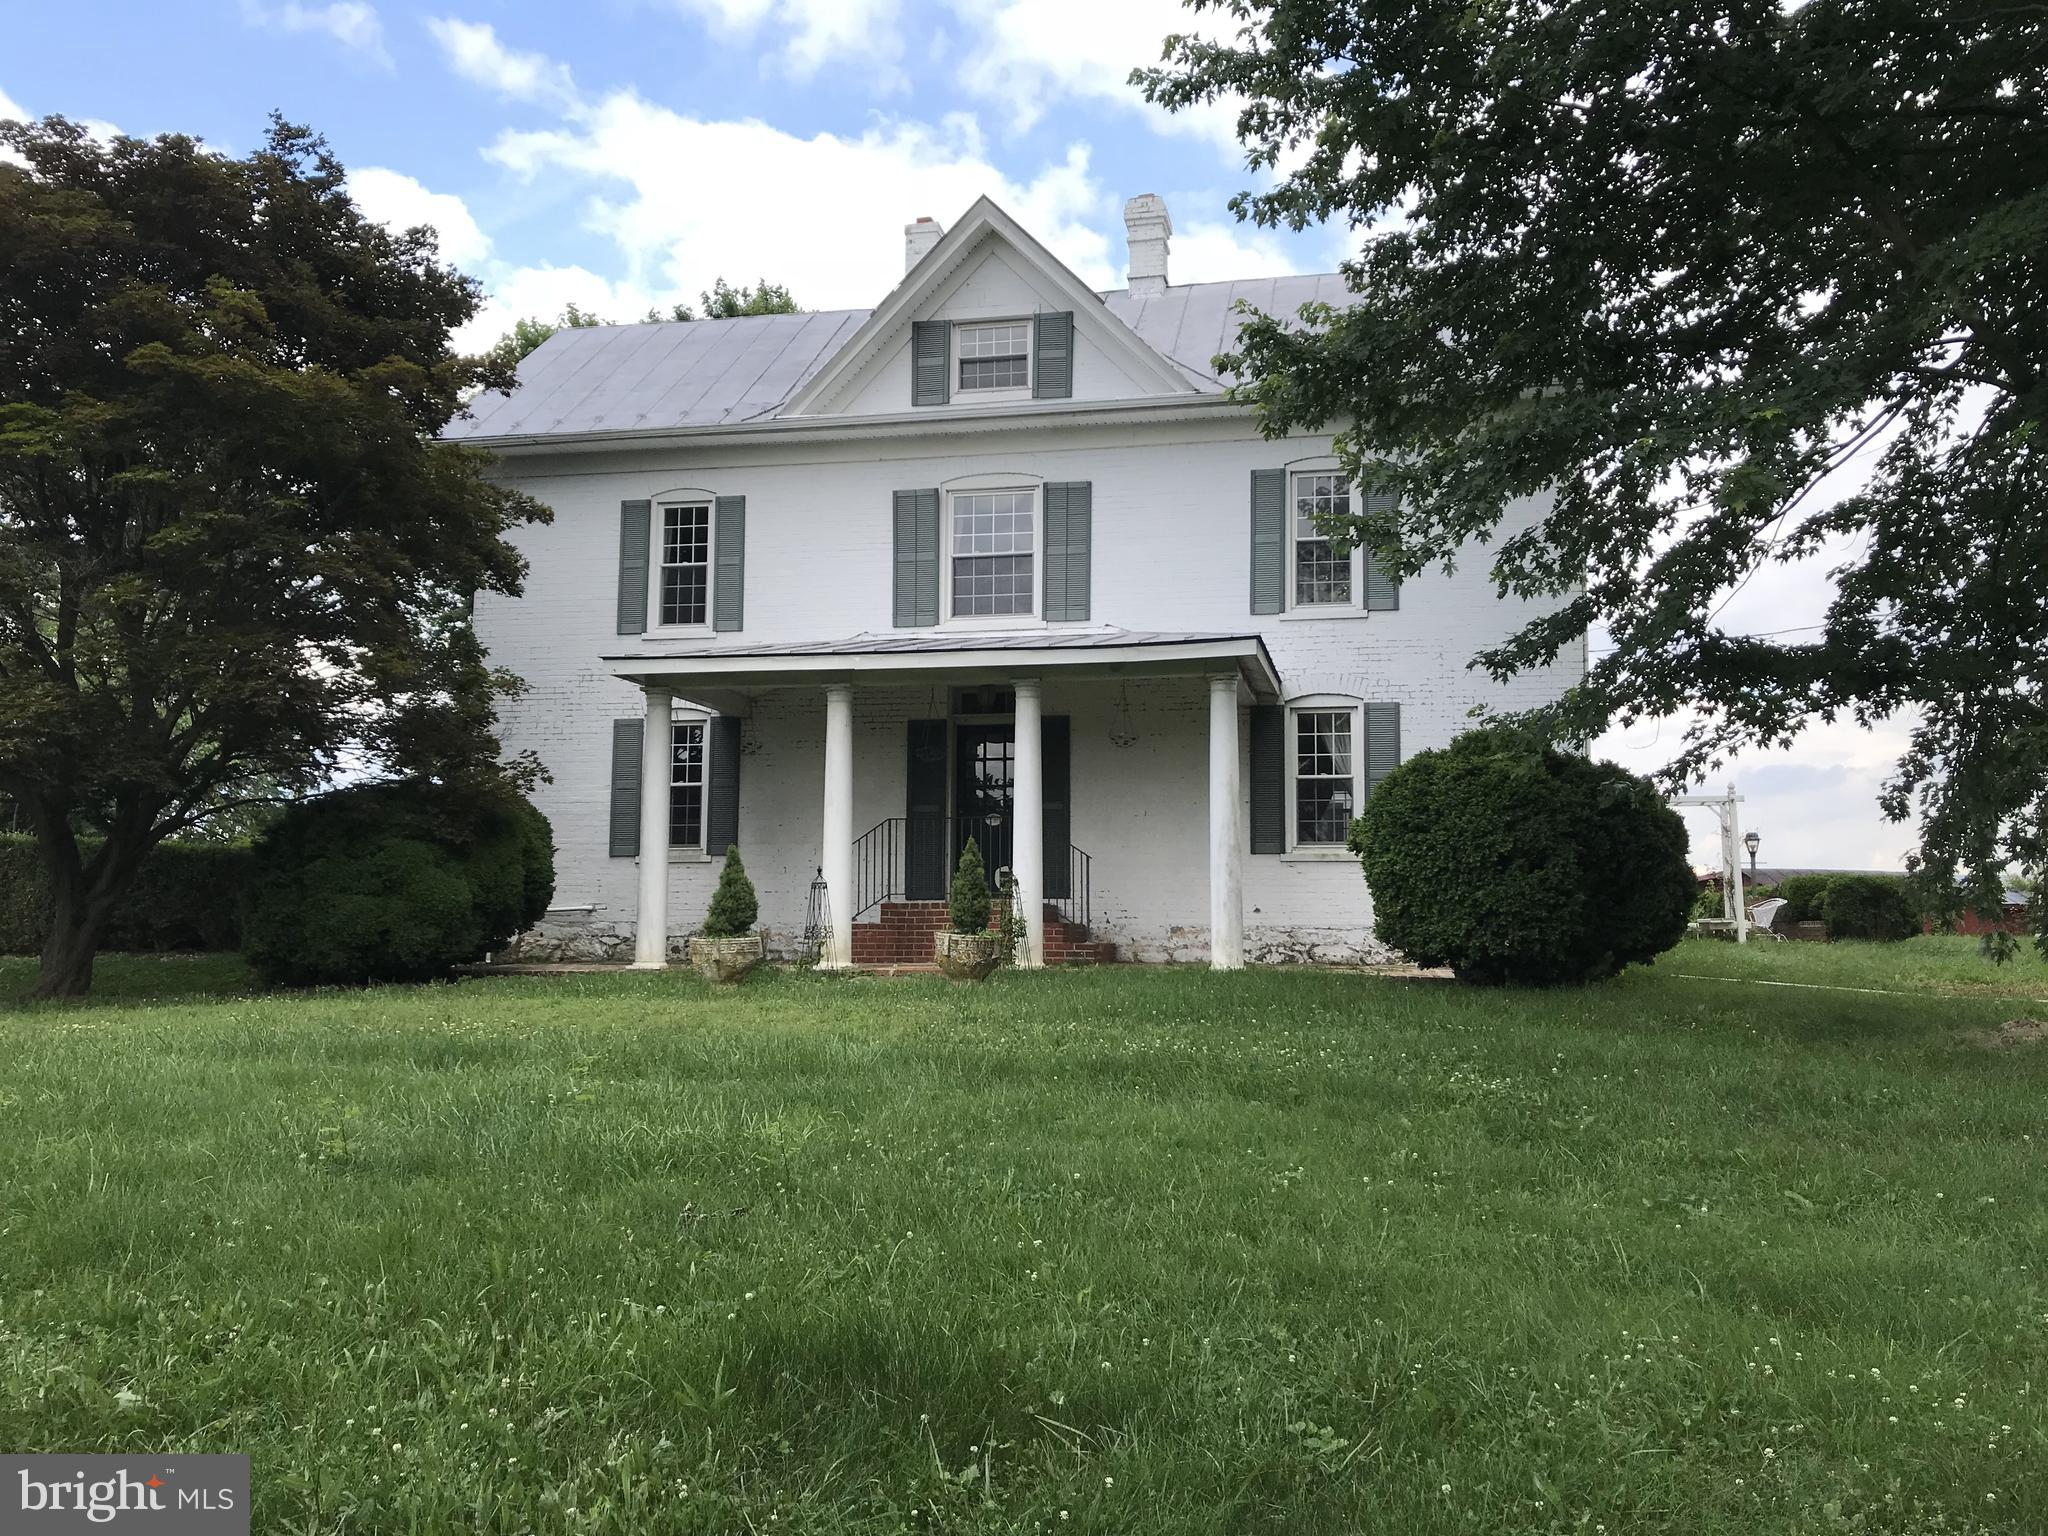 6827 LORD FAIRFAX HIGHWAY, BERRYVILLE, VA 22611